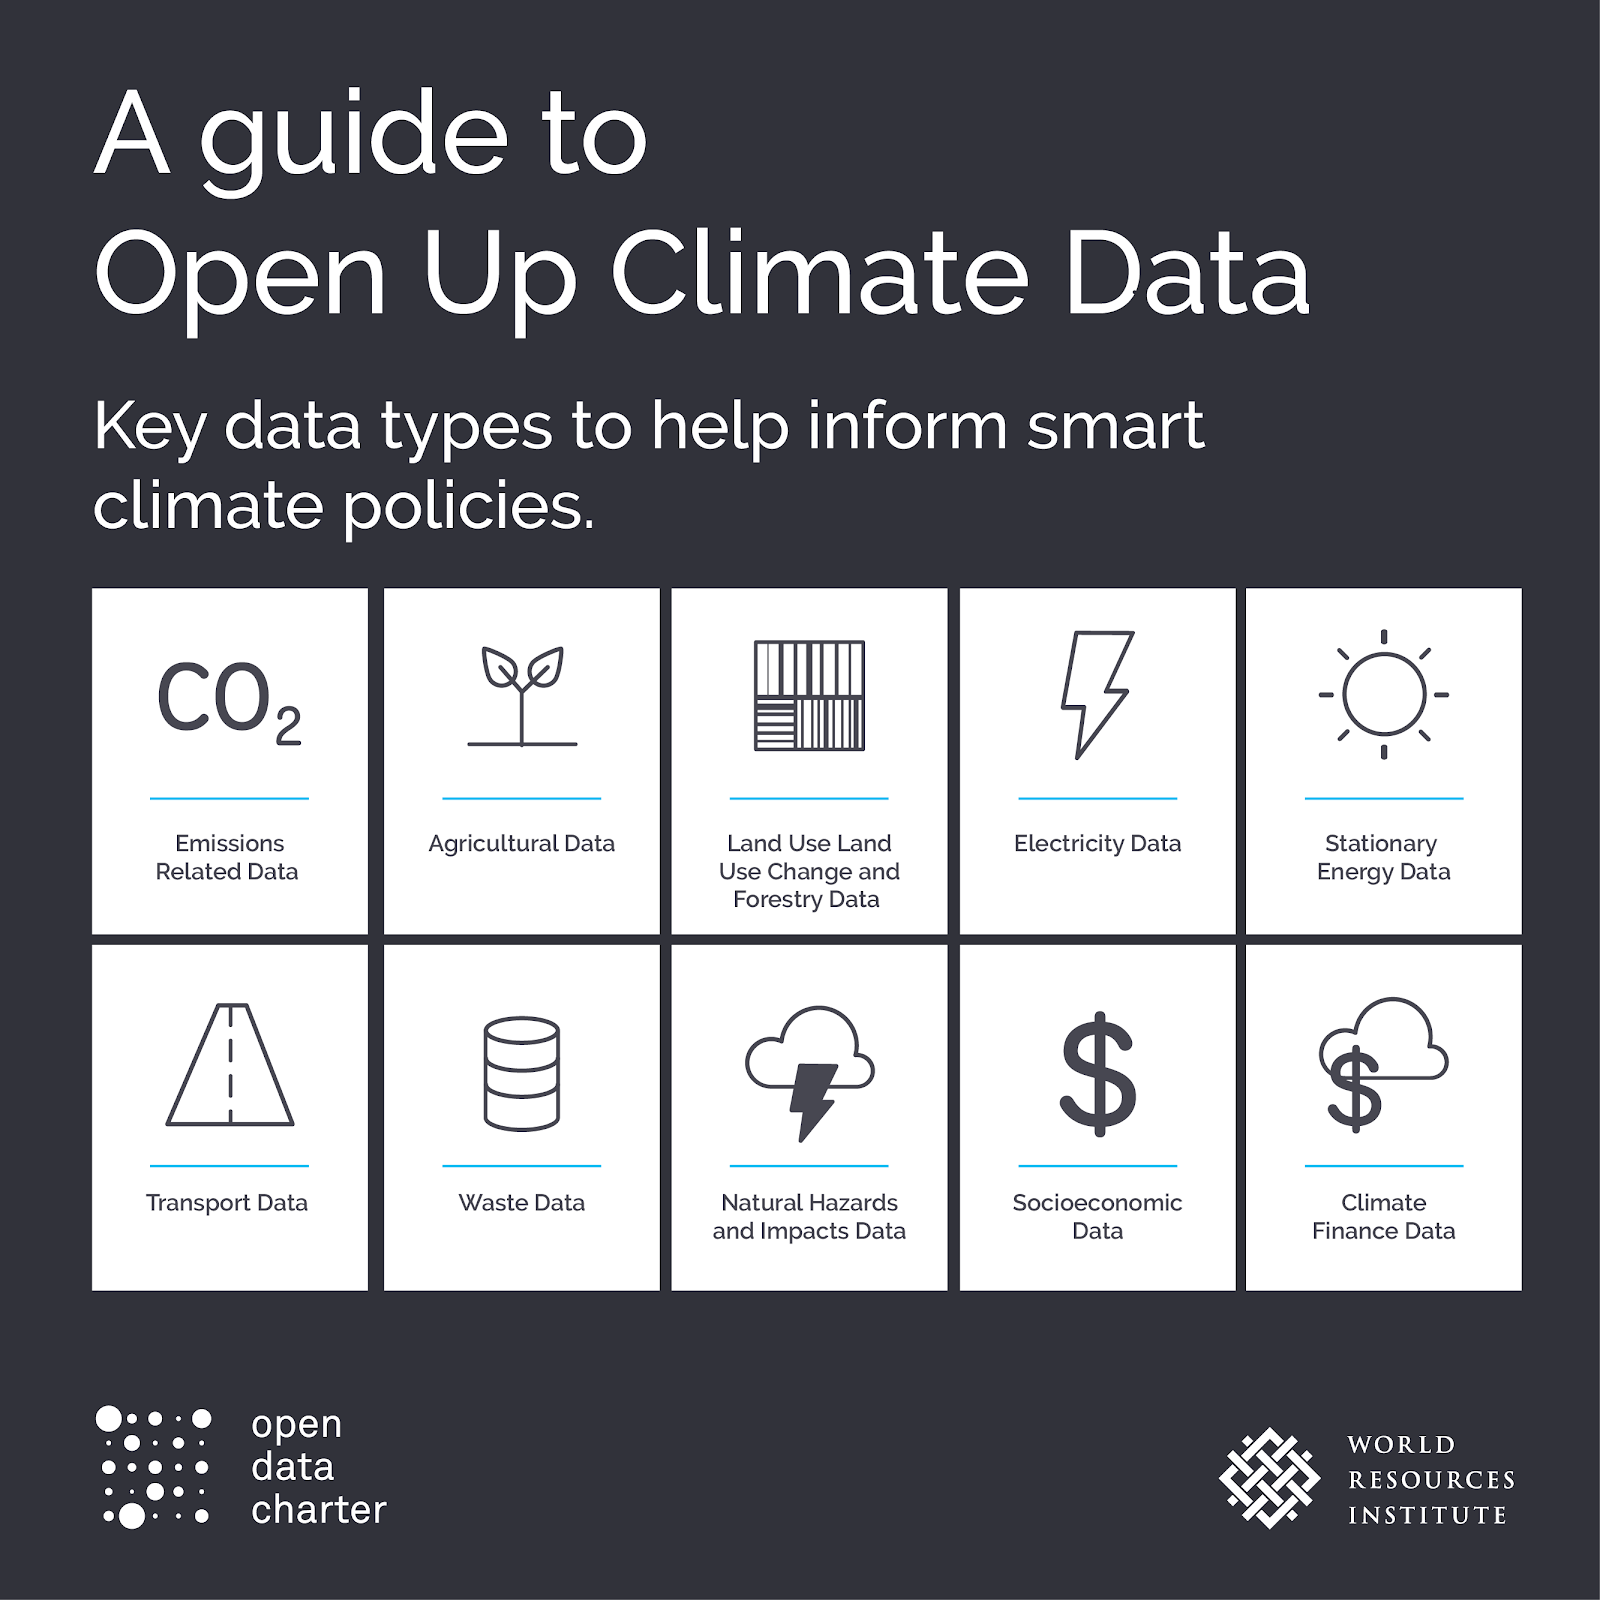 We need open climate data to inform urgent action